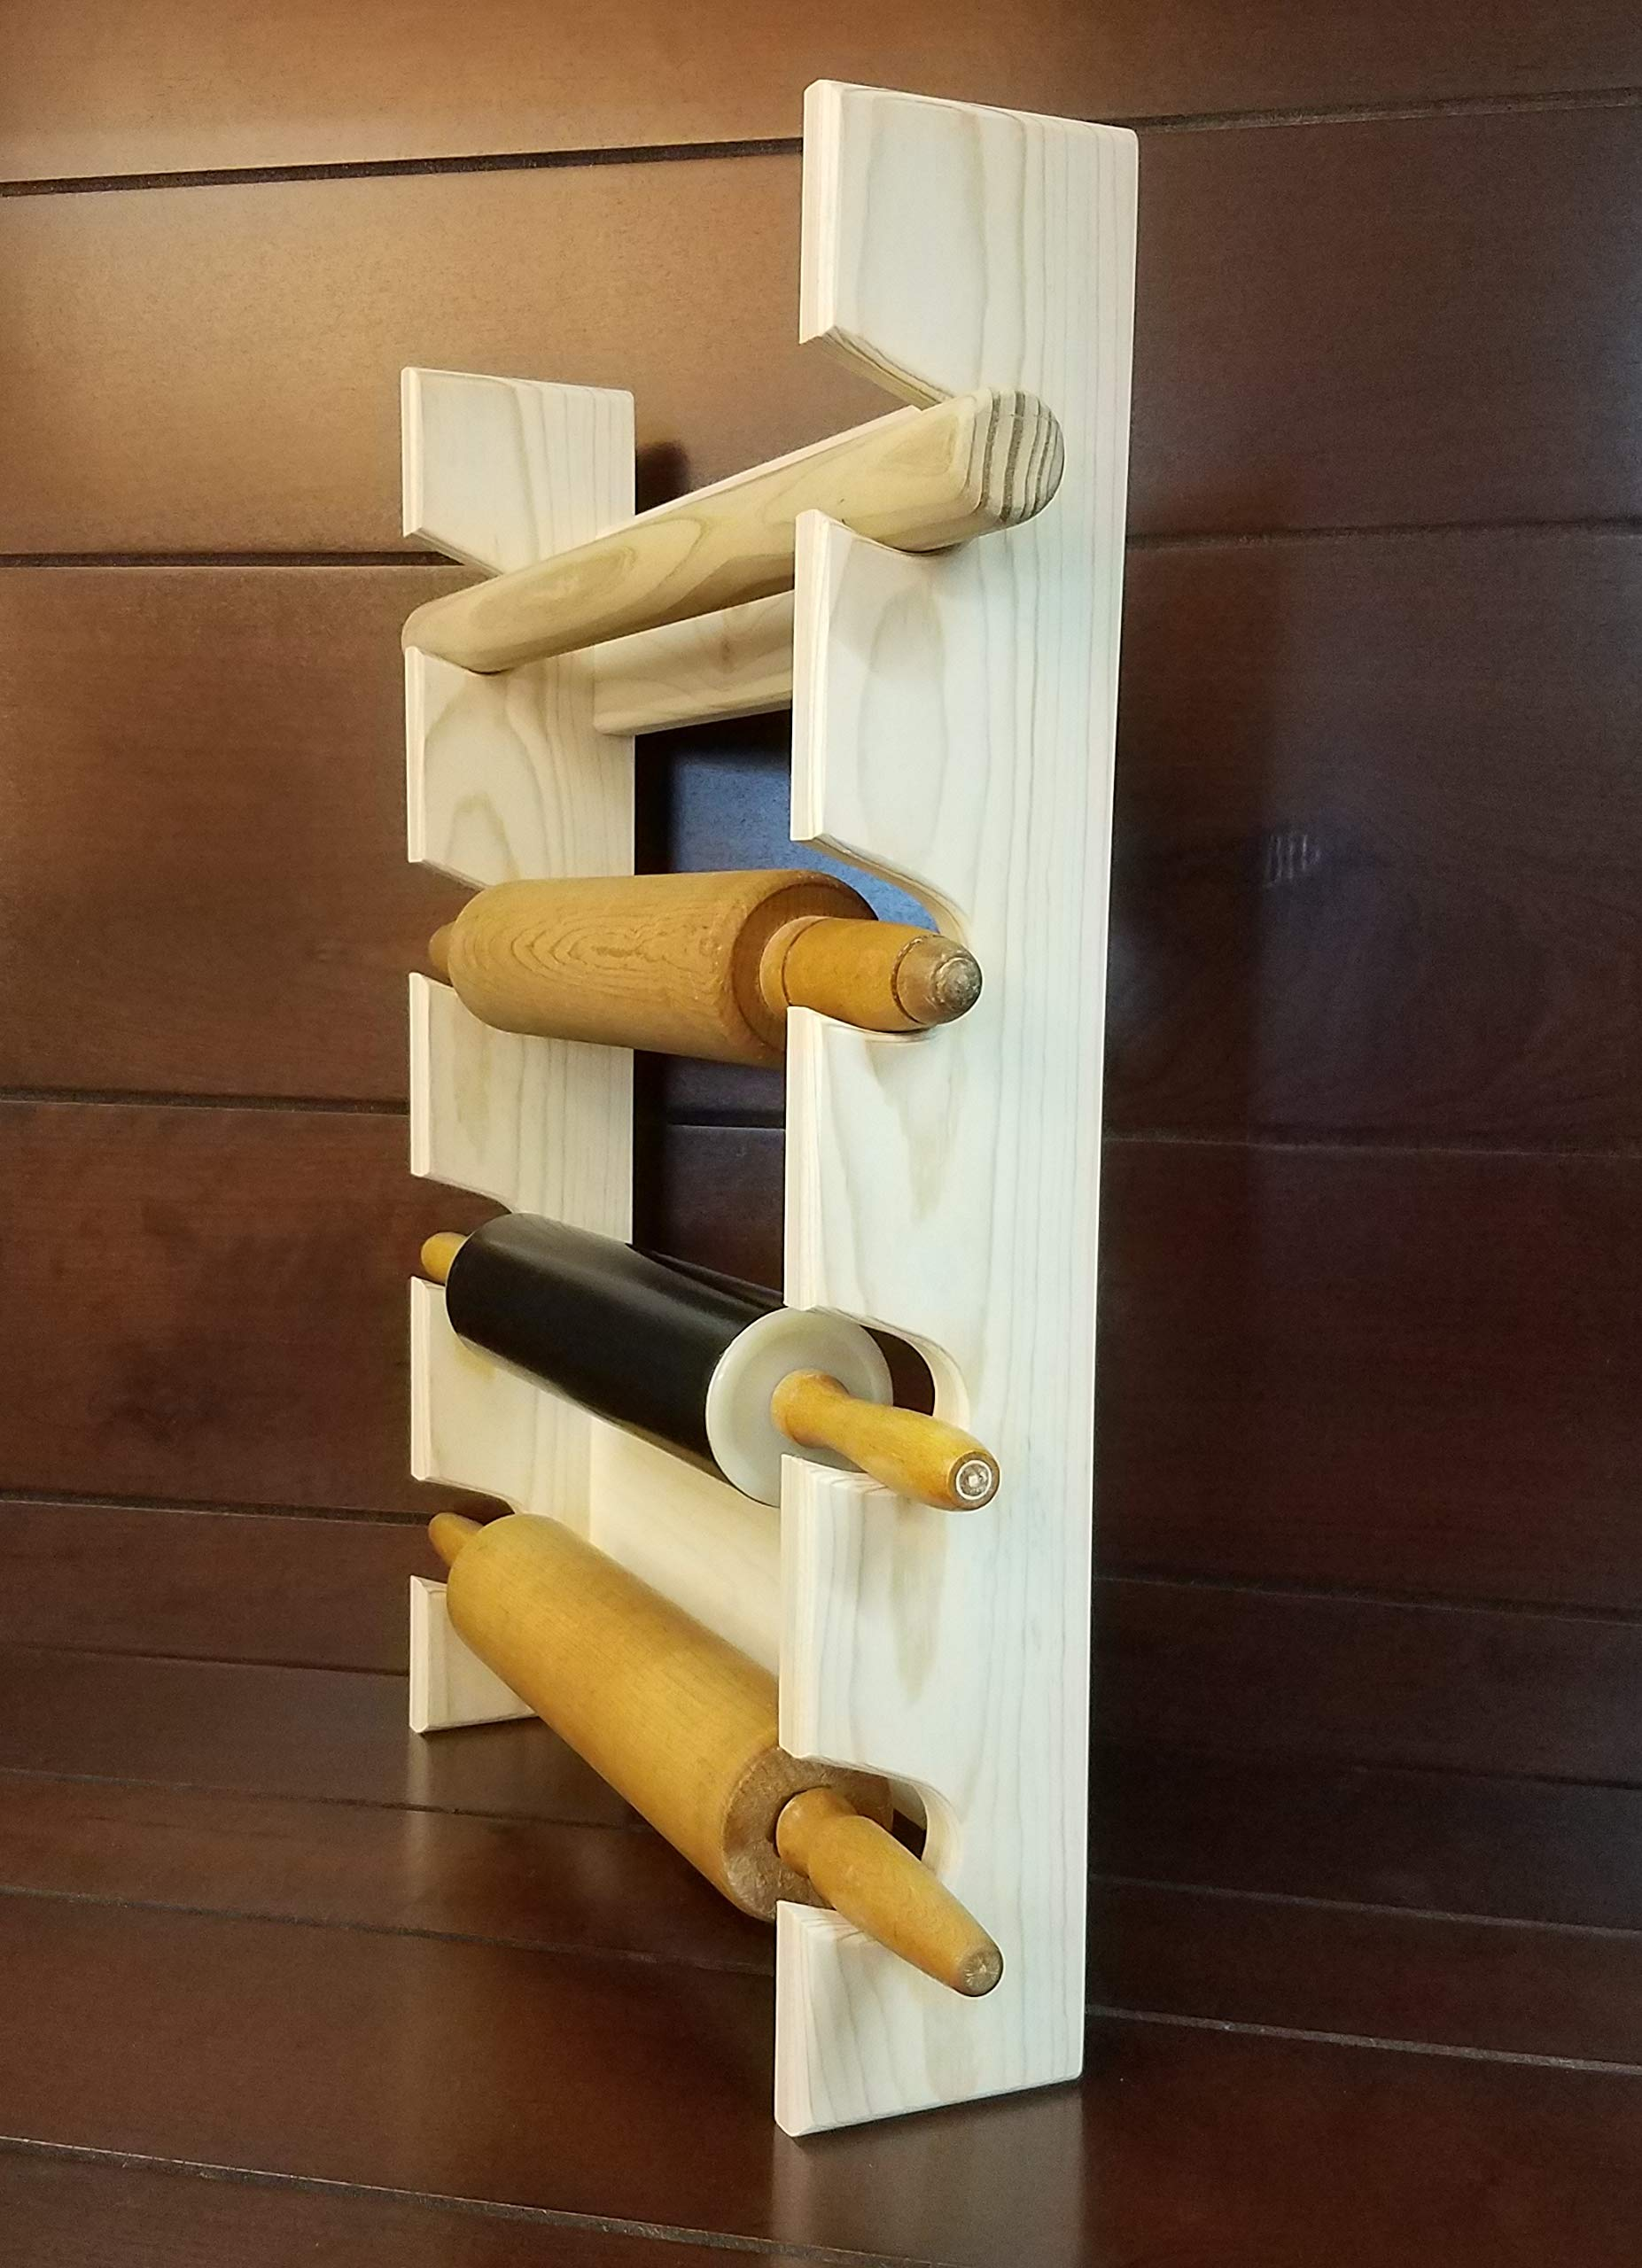 Rolling Pin Rack with Four Slots - Multiple Rolling Pin Rack - Rolling Pin Holder - Rolling Pin Storage - 4 Rolling Pin Rack by Rusty Nail Custom Woodworking (Image #2)